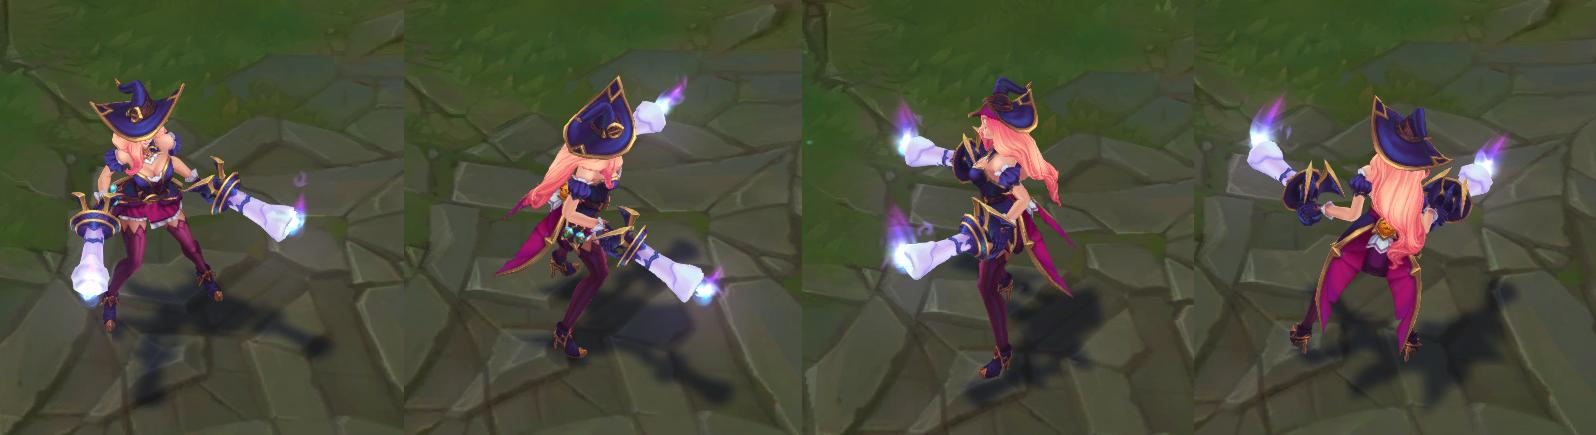 bewitching miss fortune preview lol league of legends patch 9.21